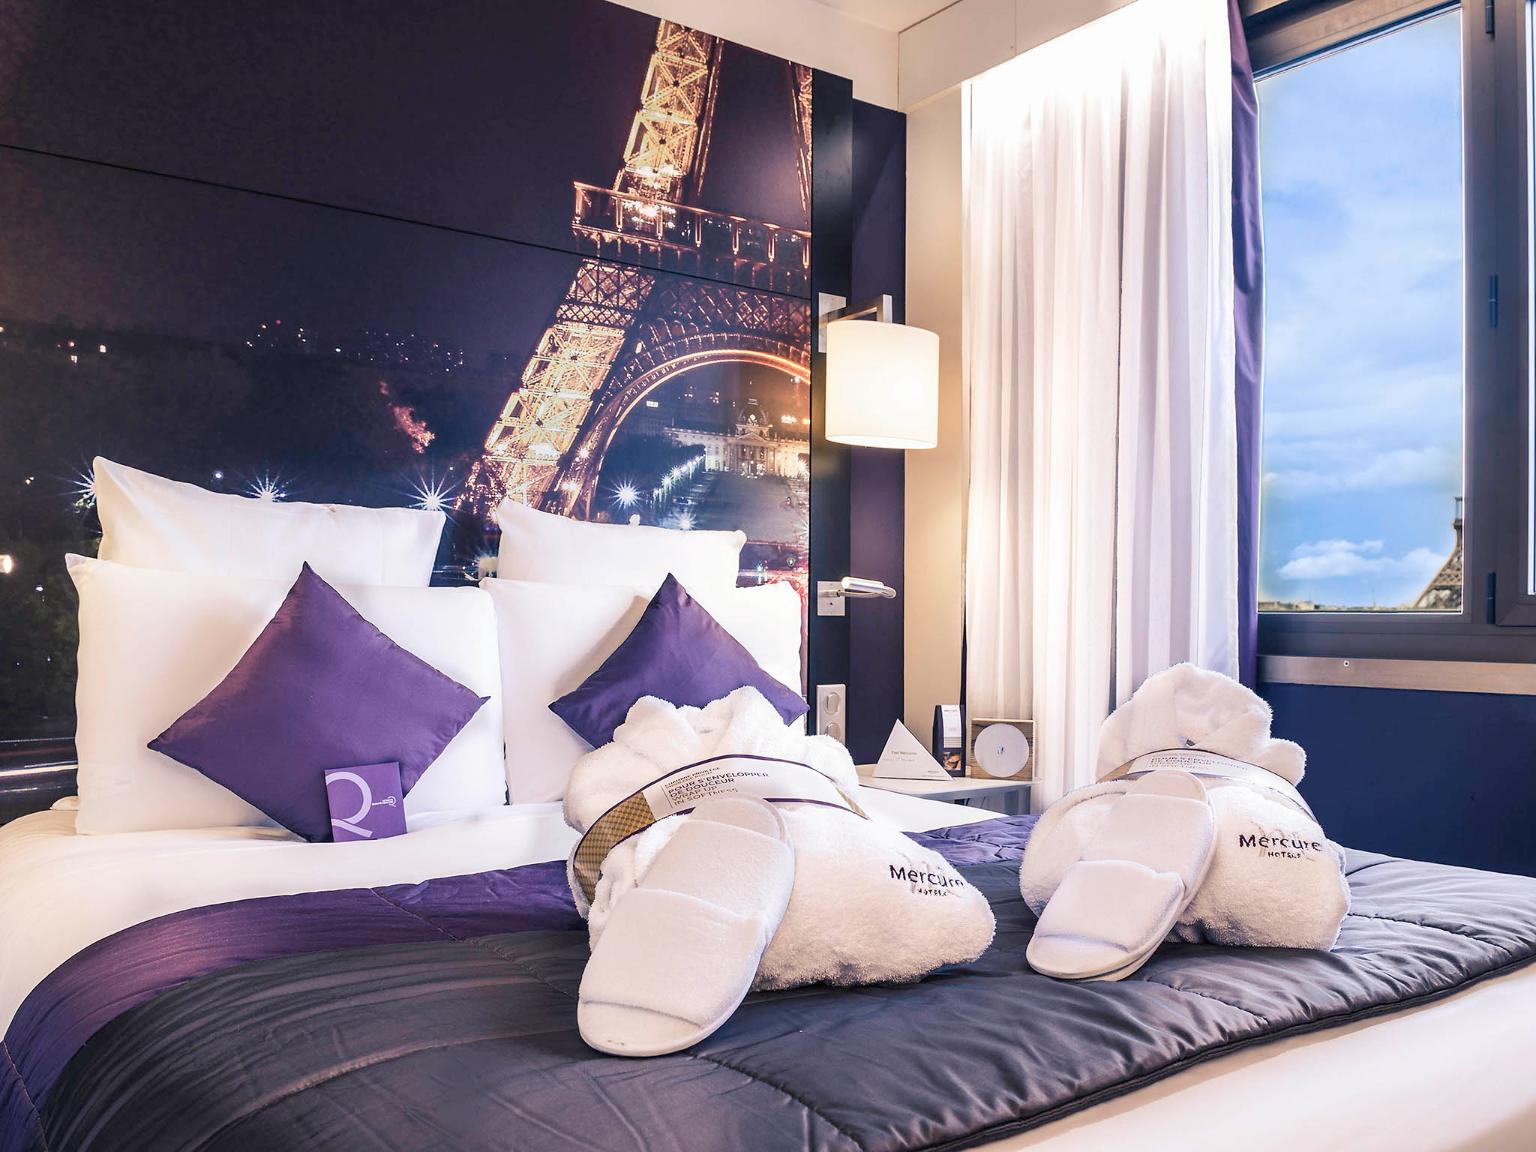 h tel mercure paris centre tour eiffel h tel 20 rue jean rey 75015 paris adresse horaire. Black Bedroom Furniture Sets. Home Design Ideas